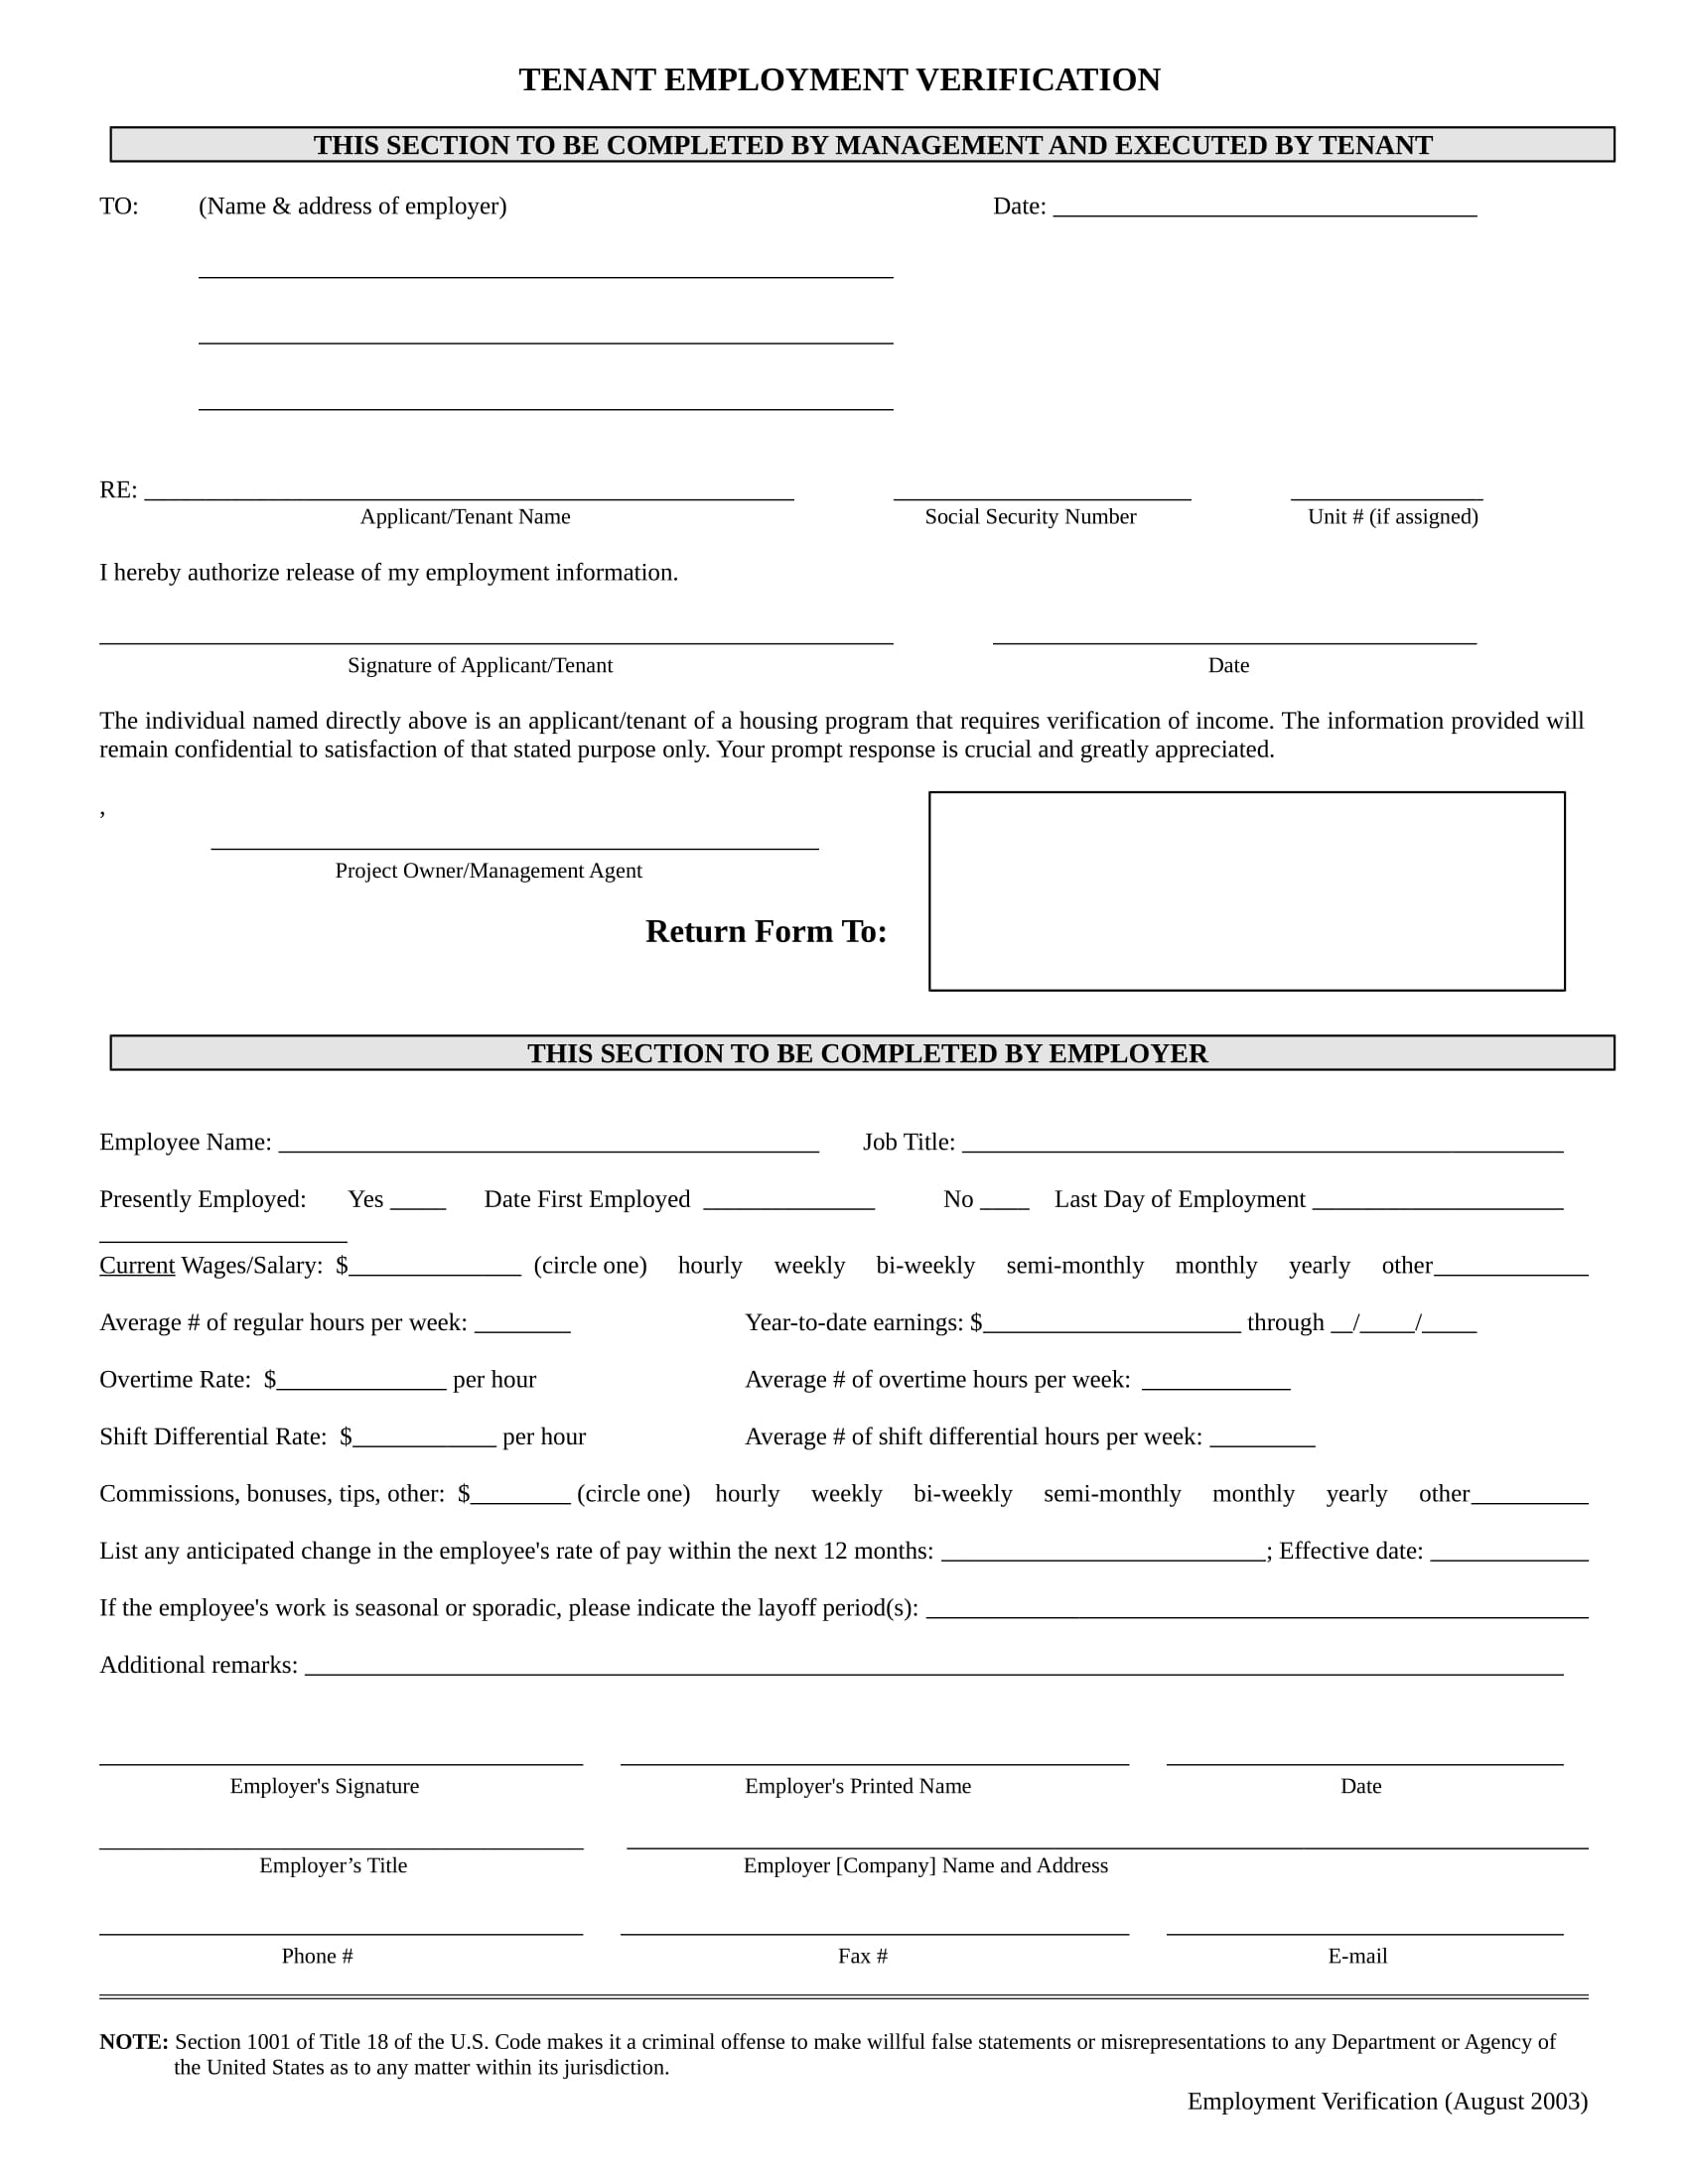 tenant application employment verification form 11